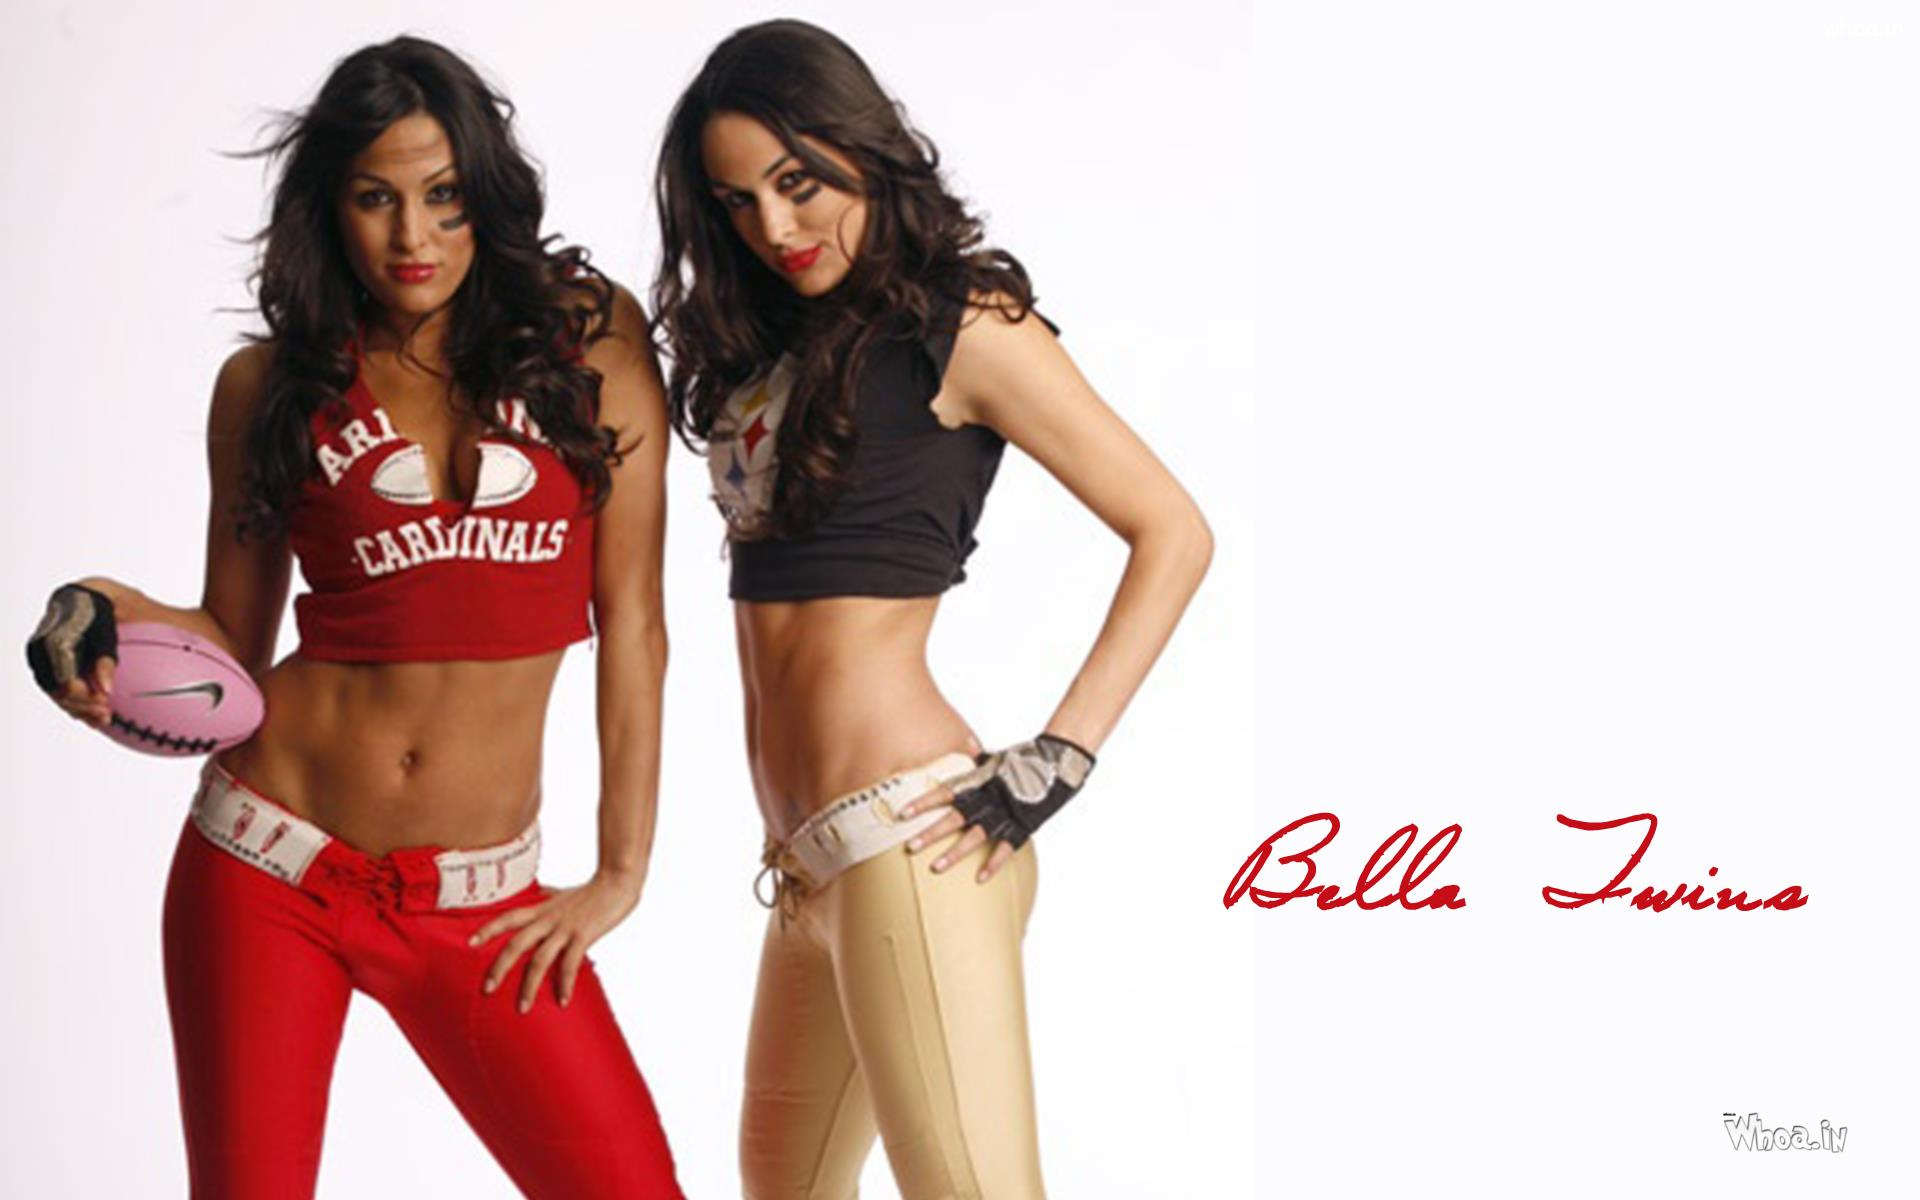 Hot The Bella Twins Giving Sexy Pose Wallpaper